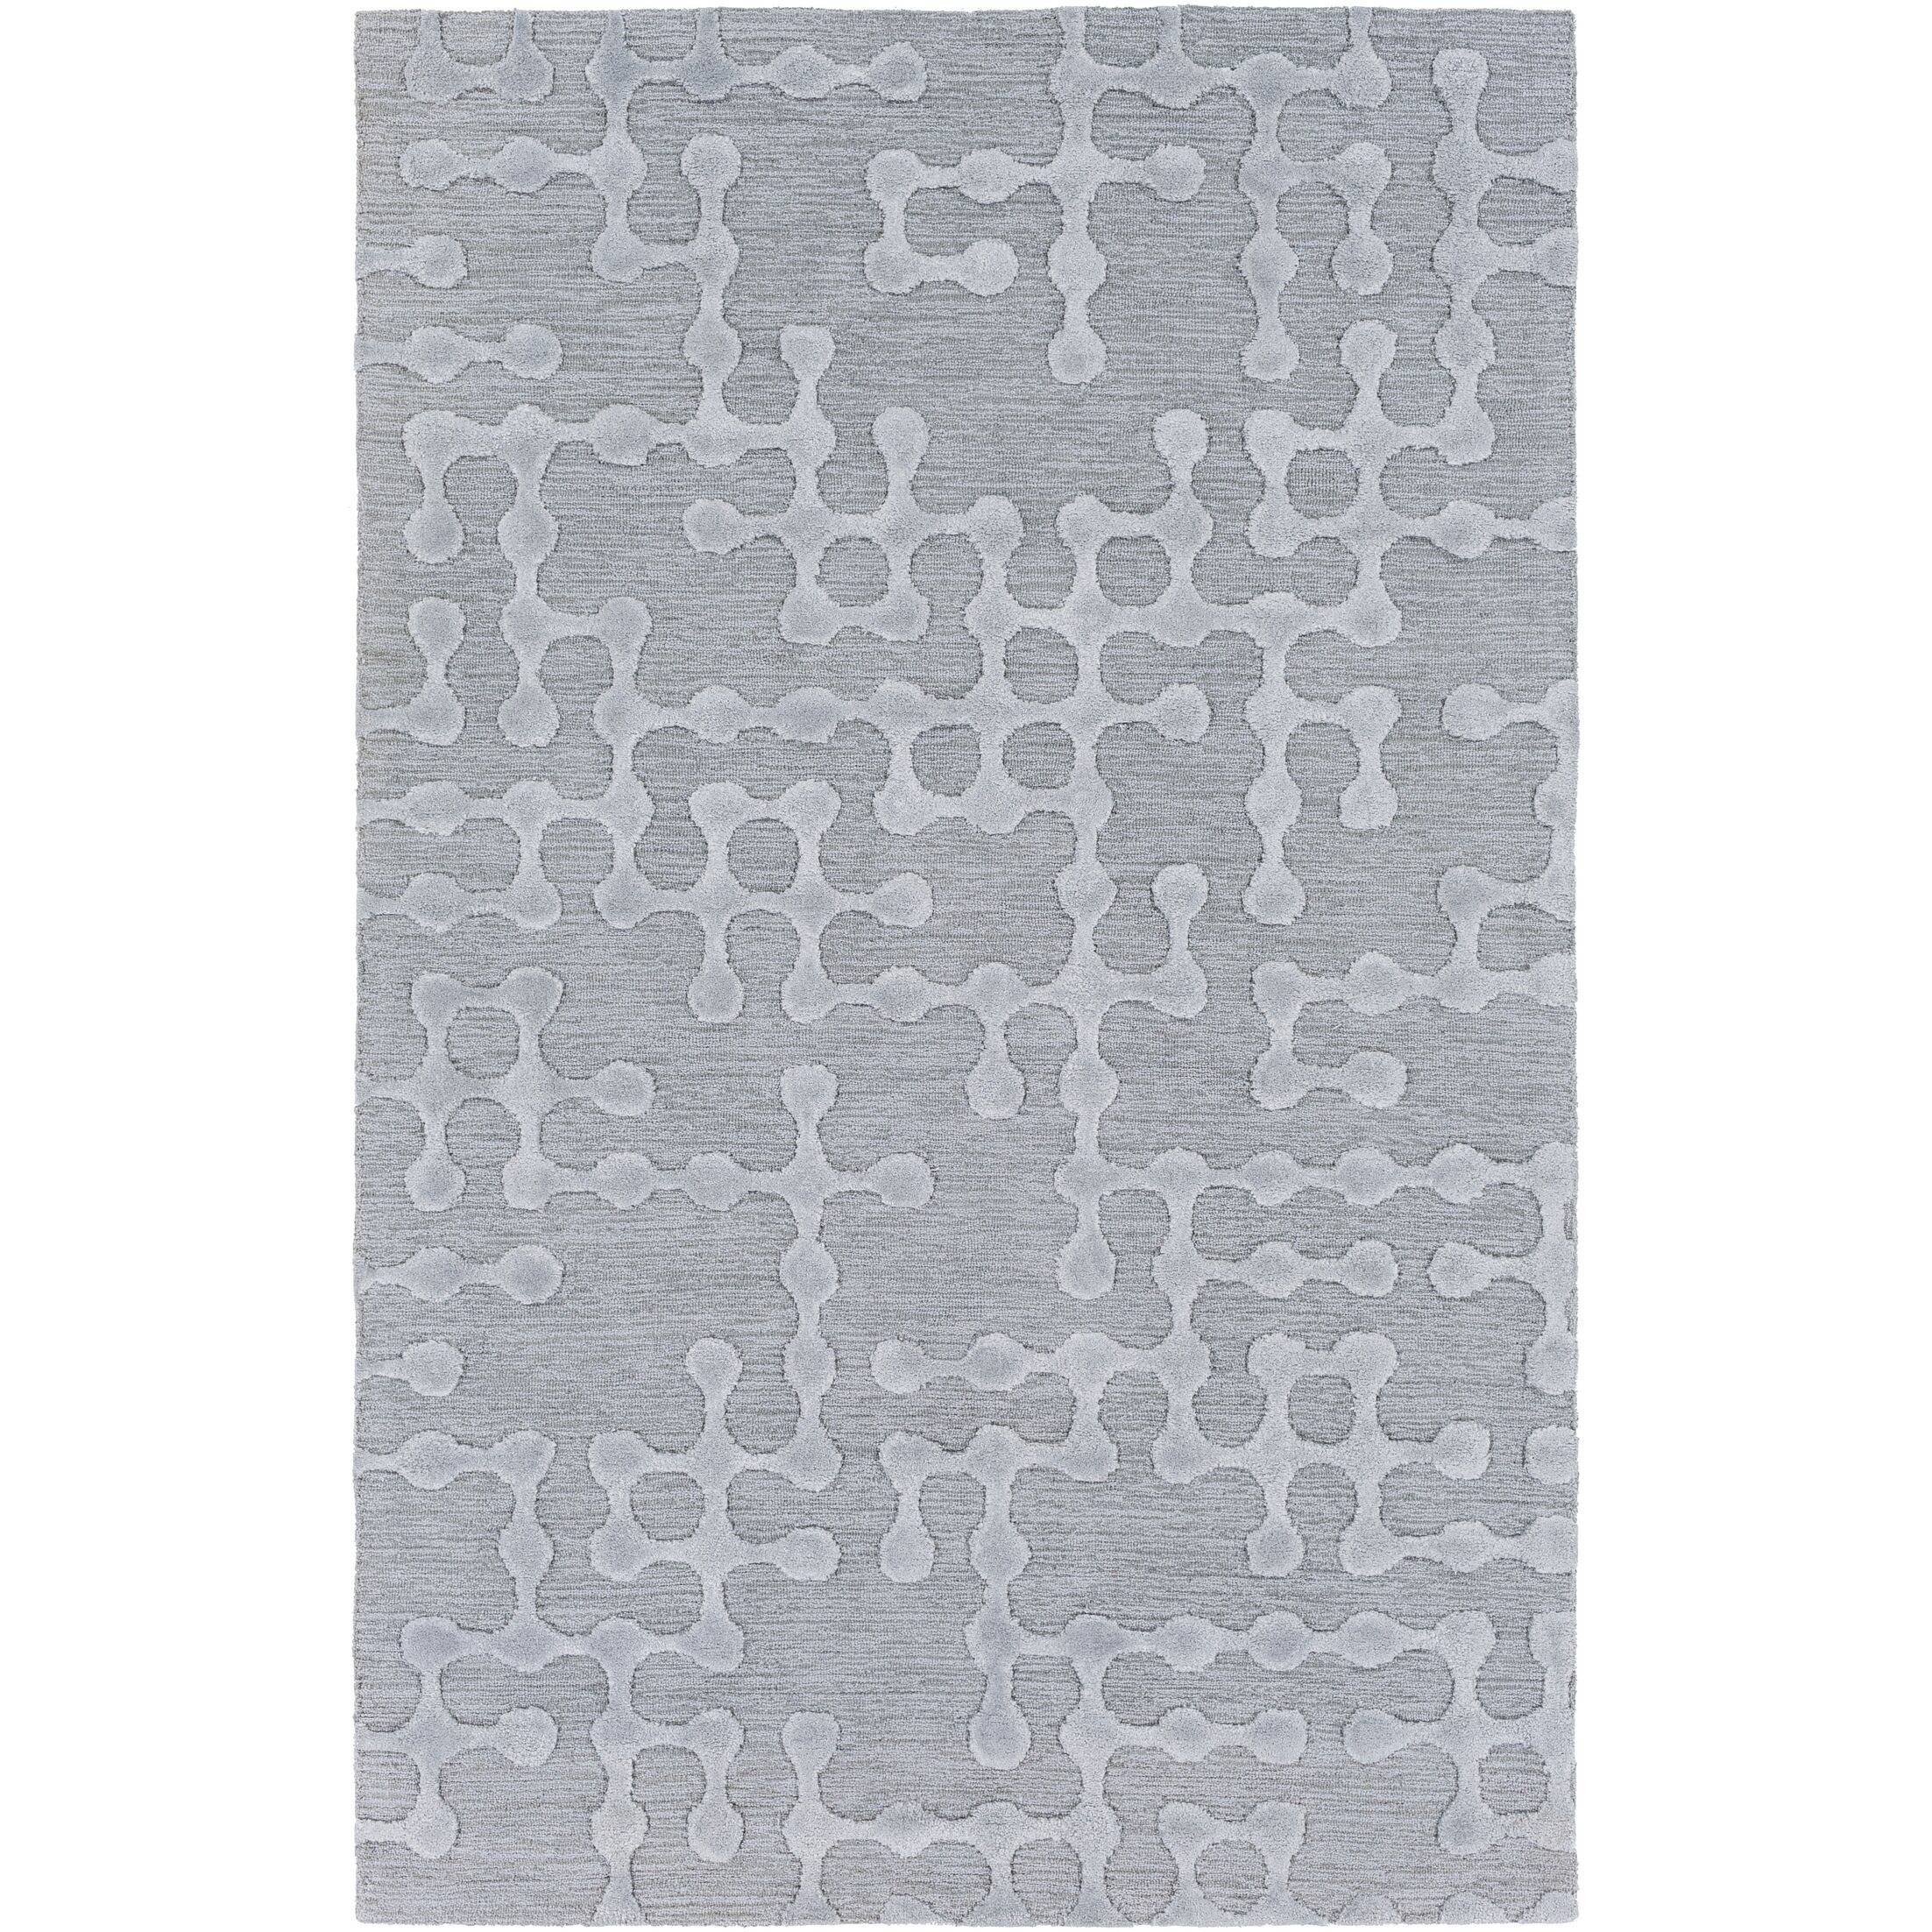 Serpentis Hand Woven Dark Purple/Taupe Area Rug Rug Size: Rectangle 12' x 15'